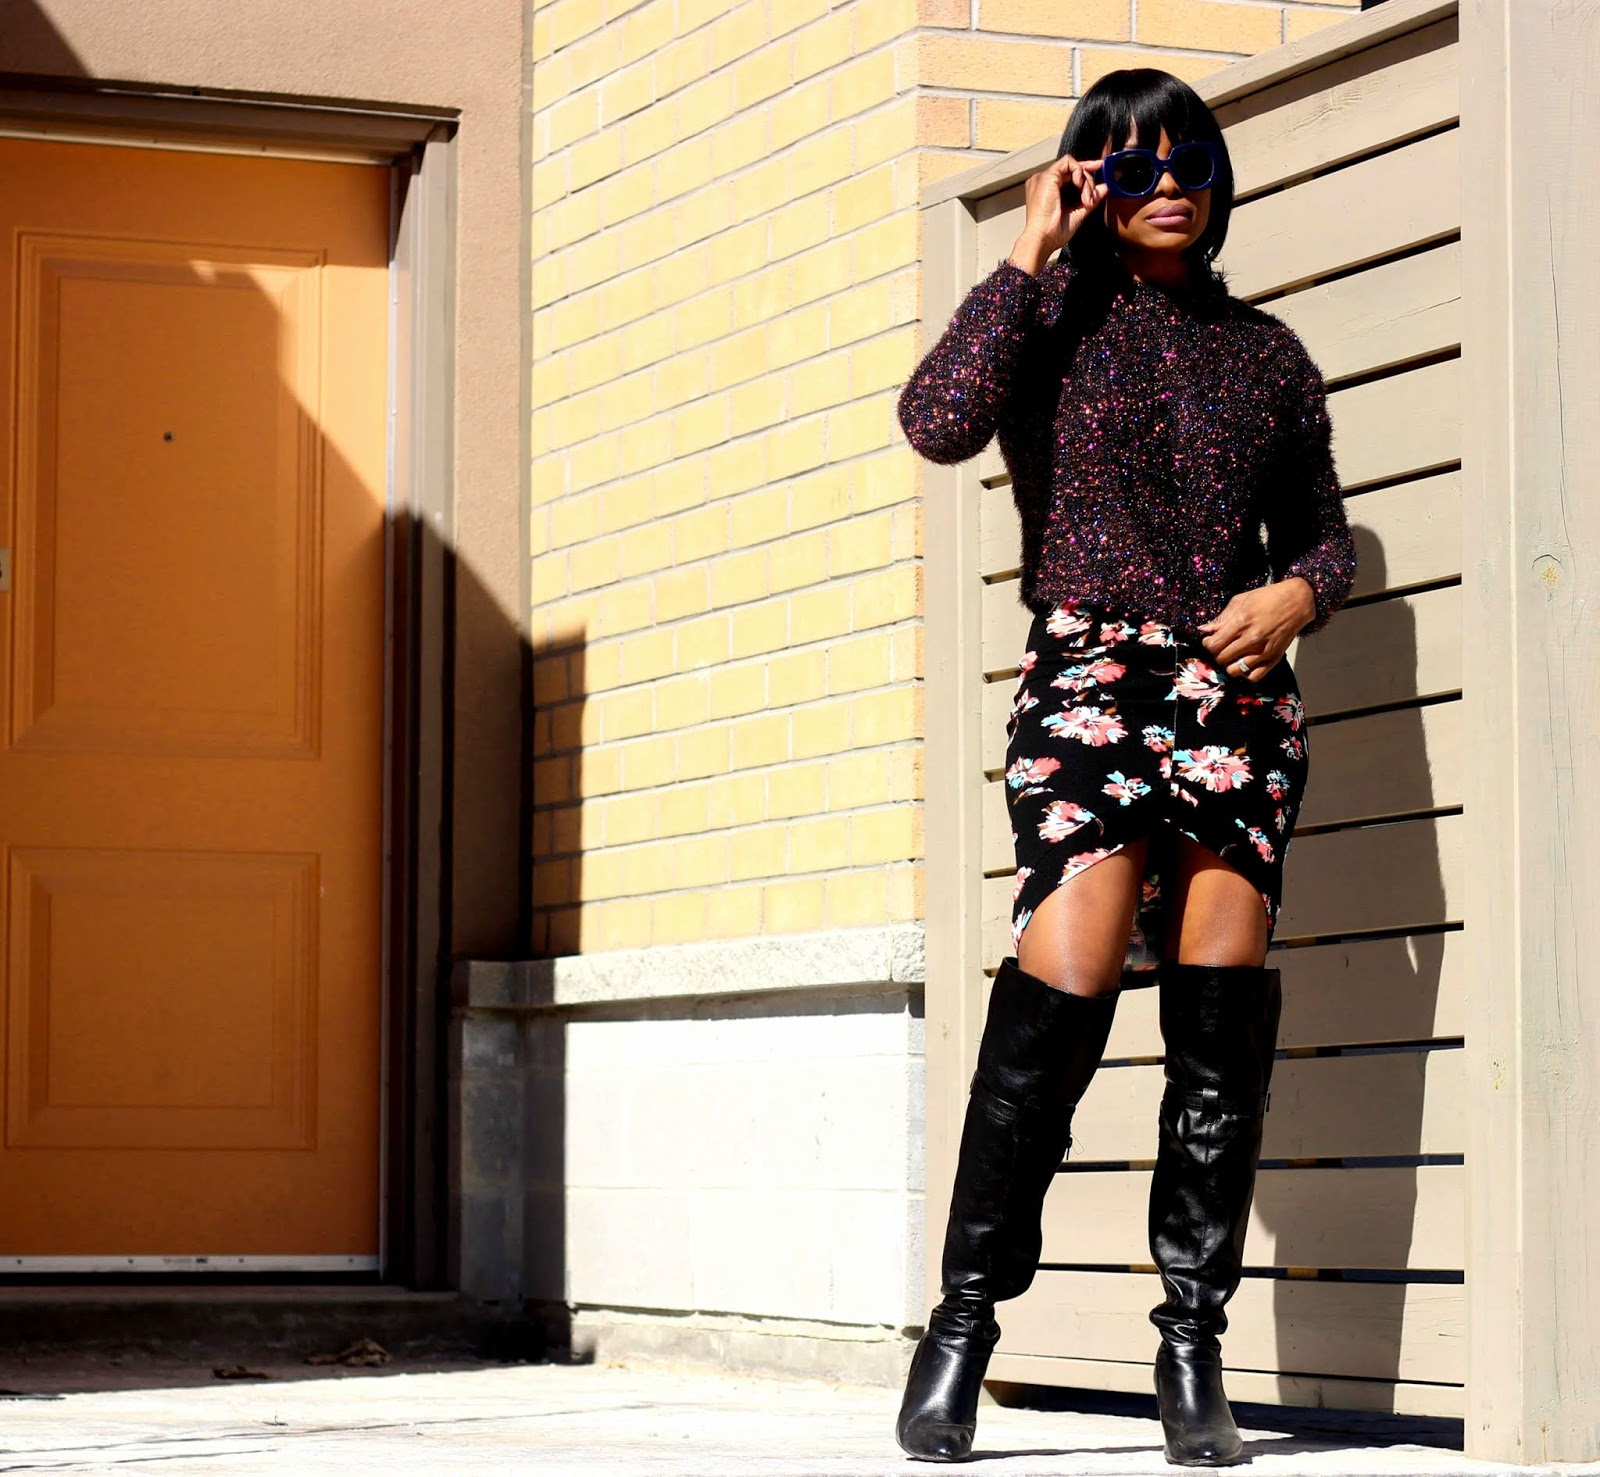 H&M Glittery Sweater Top + Floral Print Pencil Skirt by Sirens